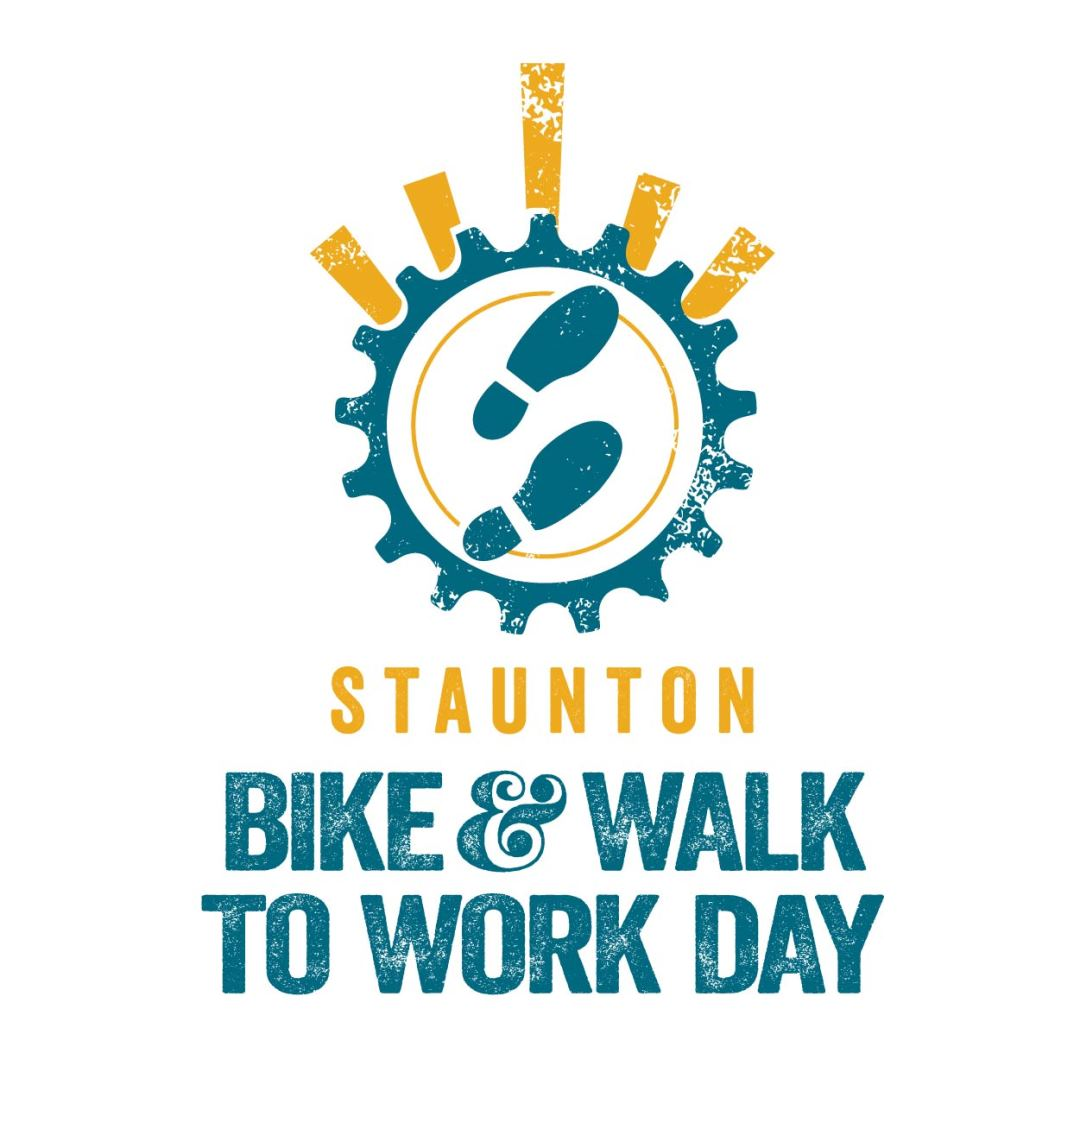 City of Staunton's Bike & Walk to Work Day